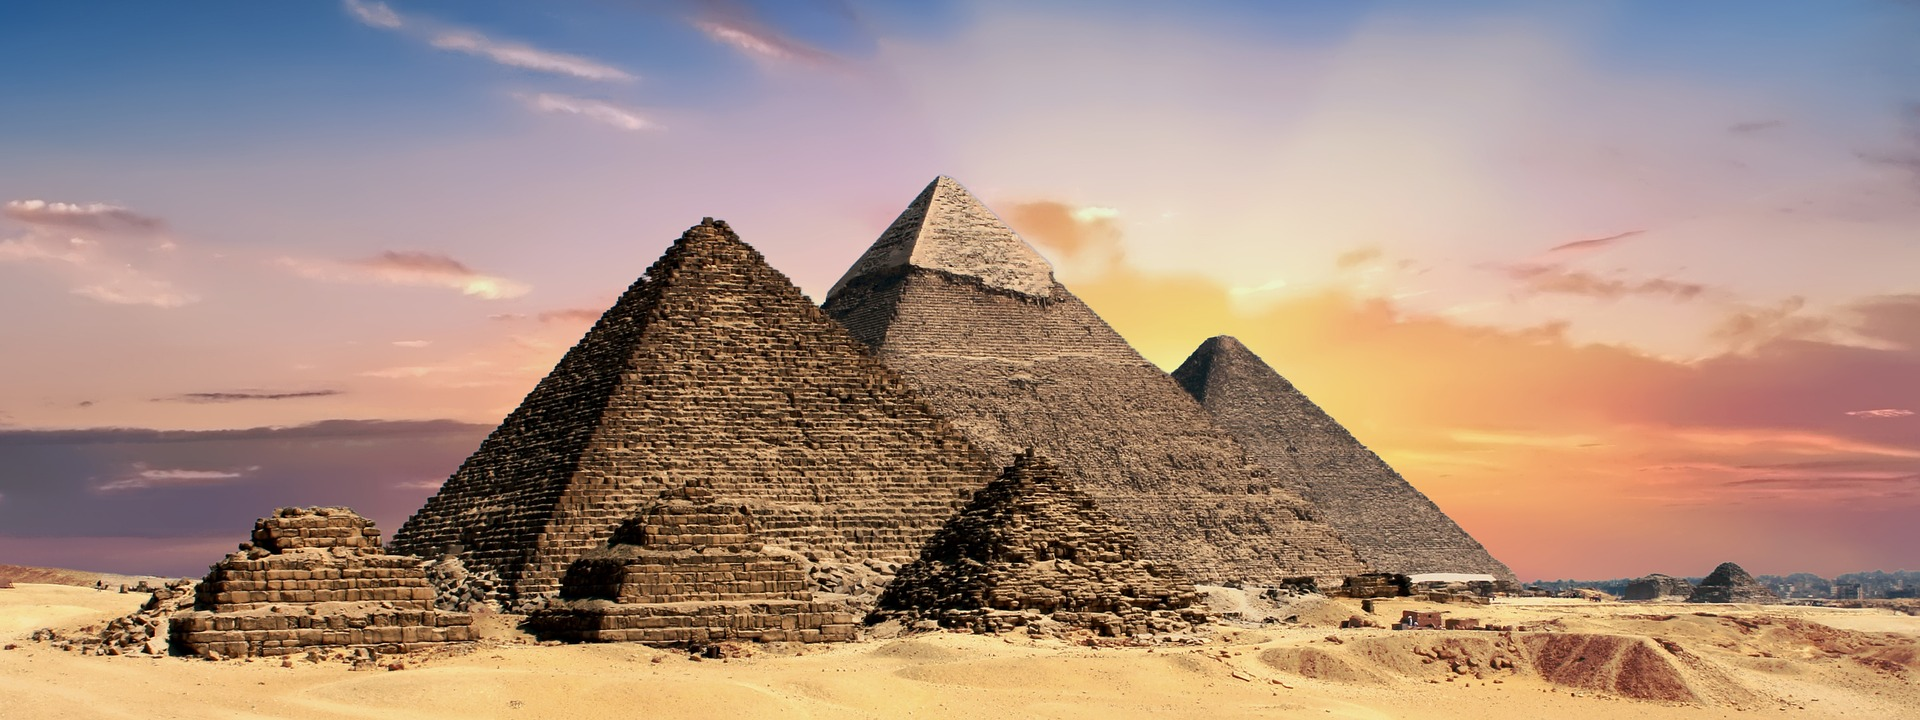 5 Practical Travel Tips for Those Looking to Visit Egypt